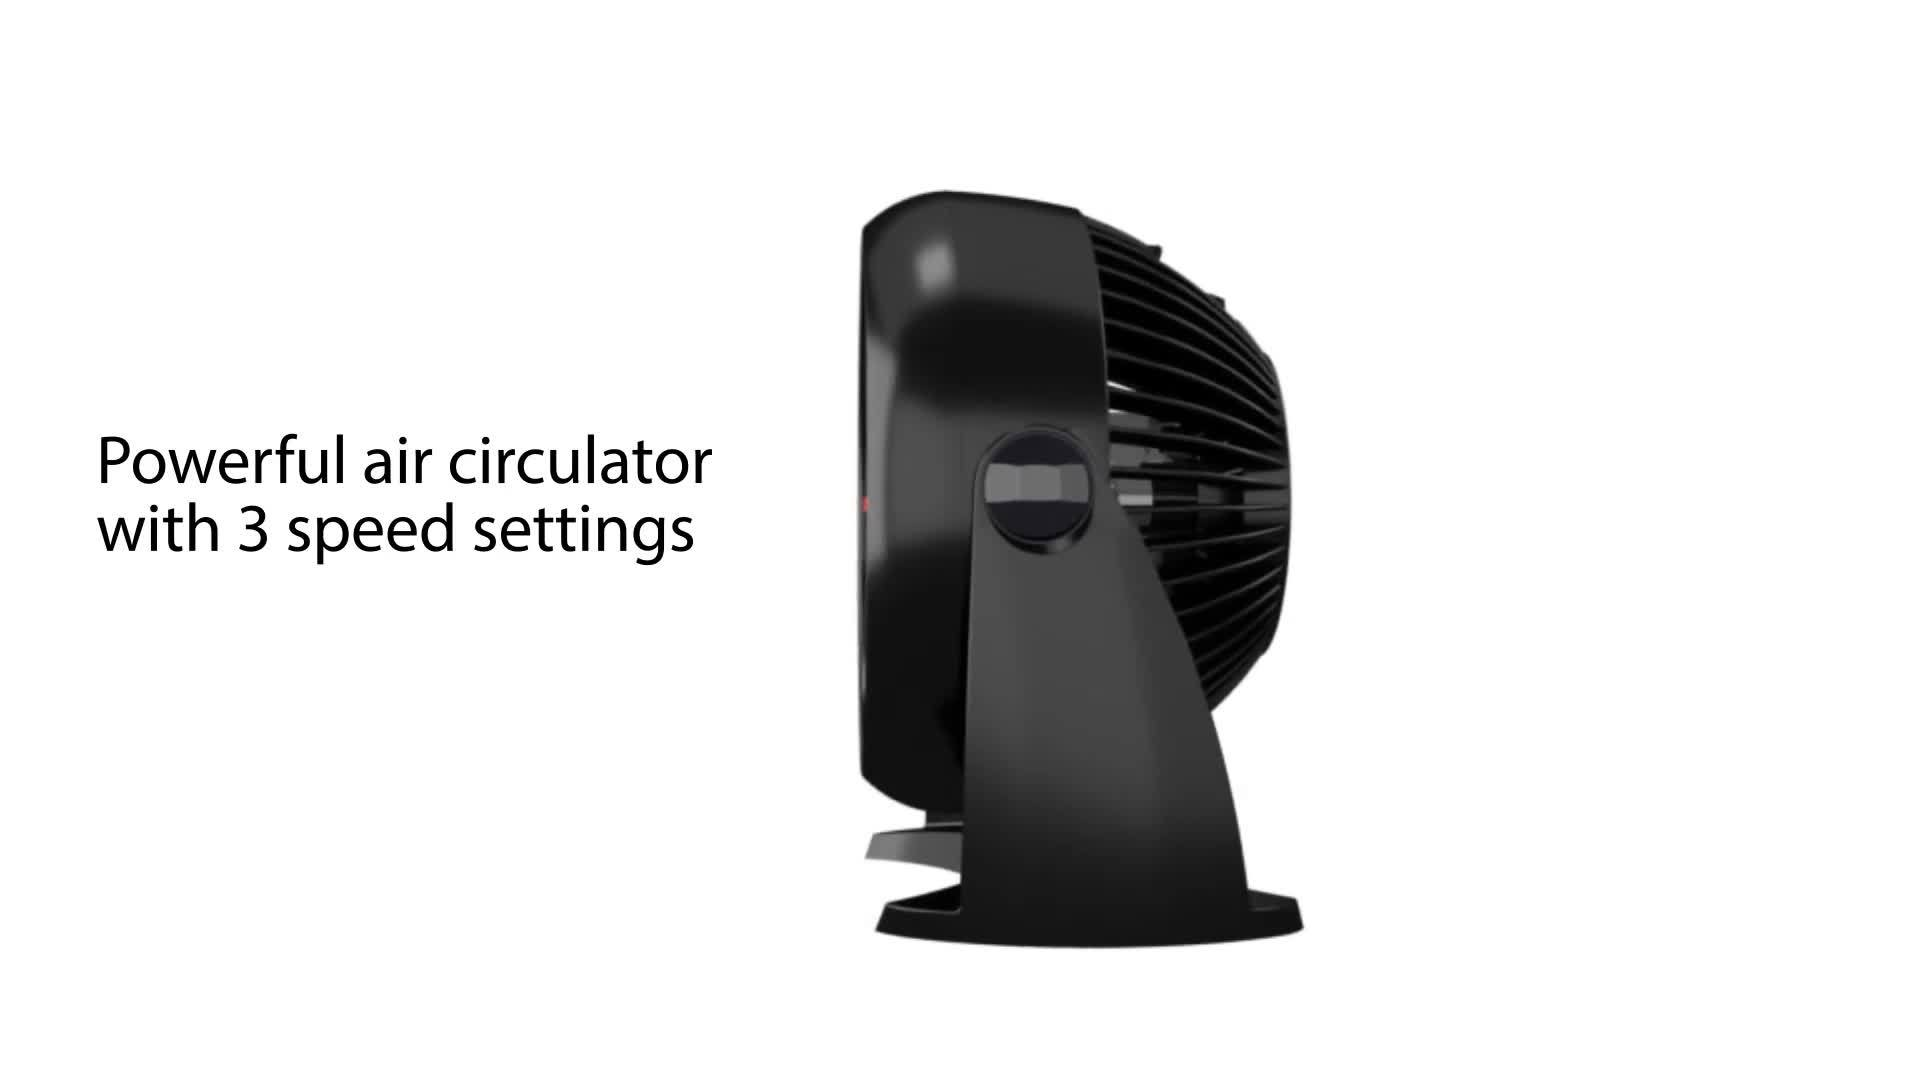 Honeywell Table Air Circulator Fan, HT 900, Black